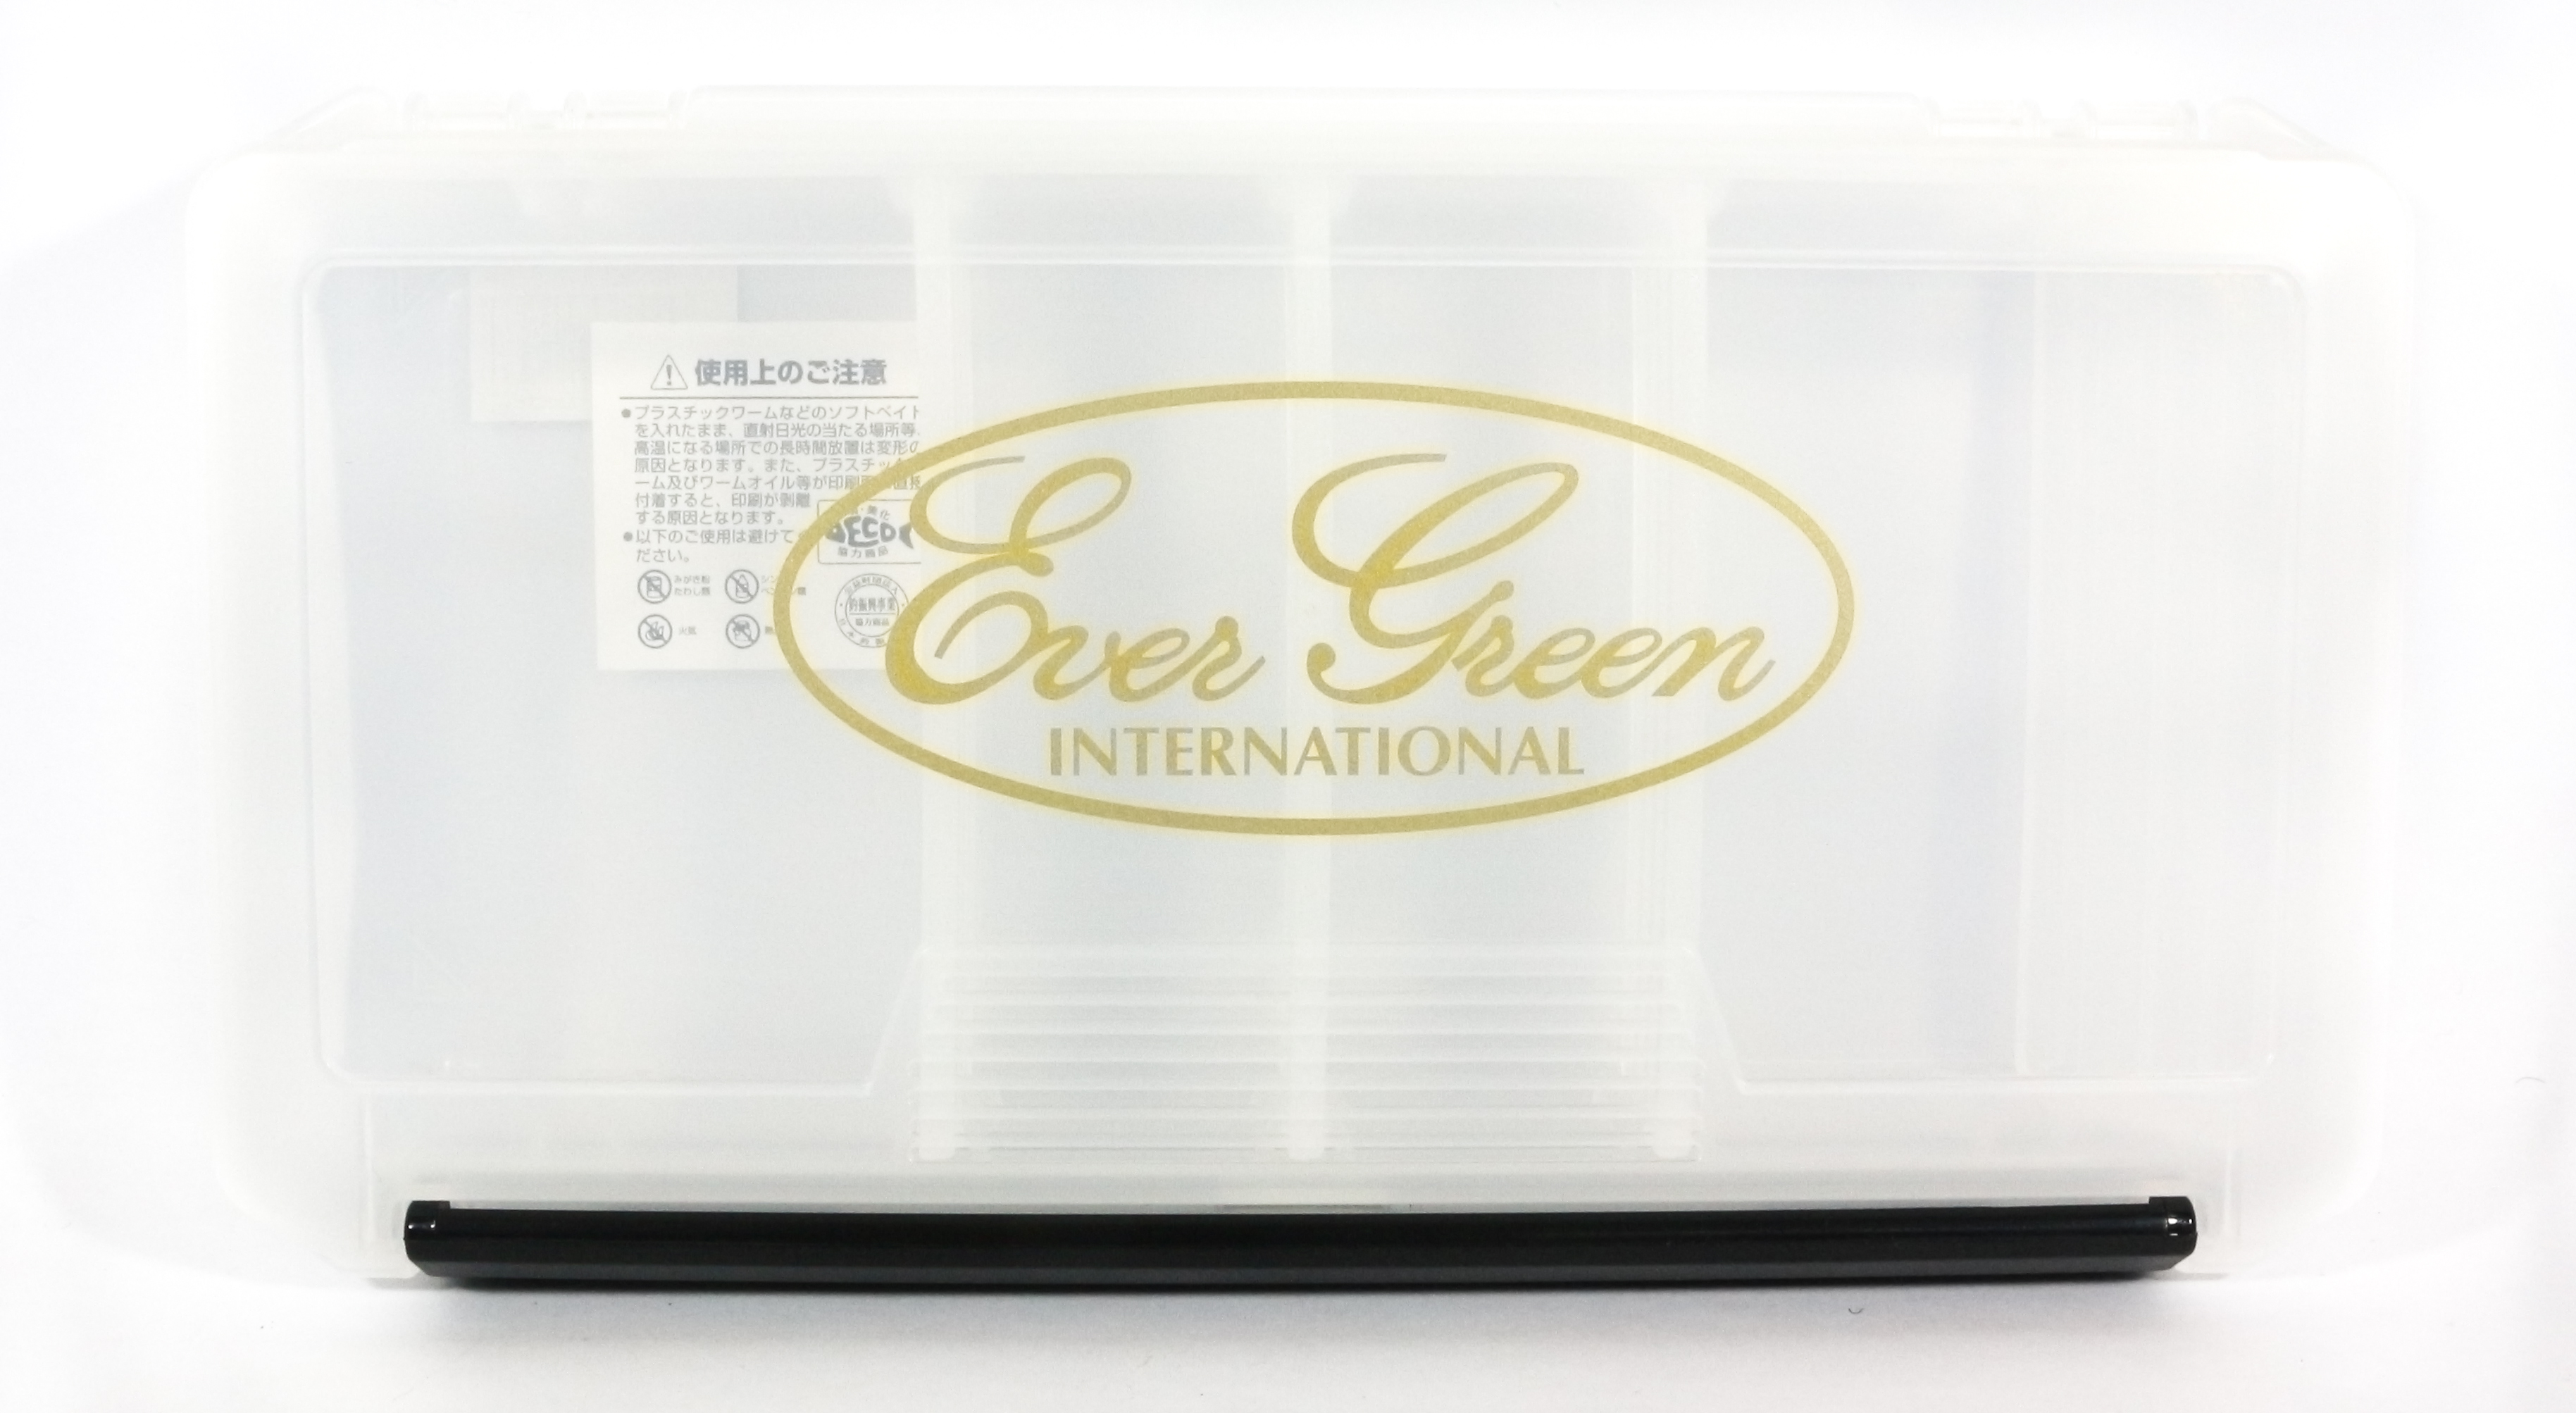 Evergreen Tackle Box Clear Evergreen International 233 x 127 x 34 mm (8099)